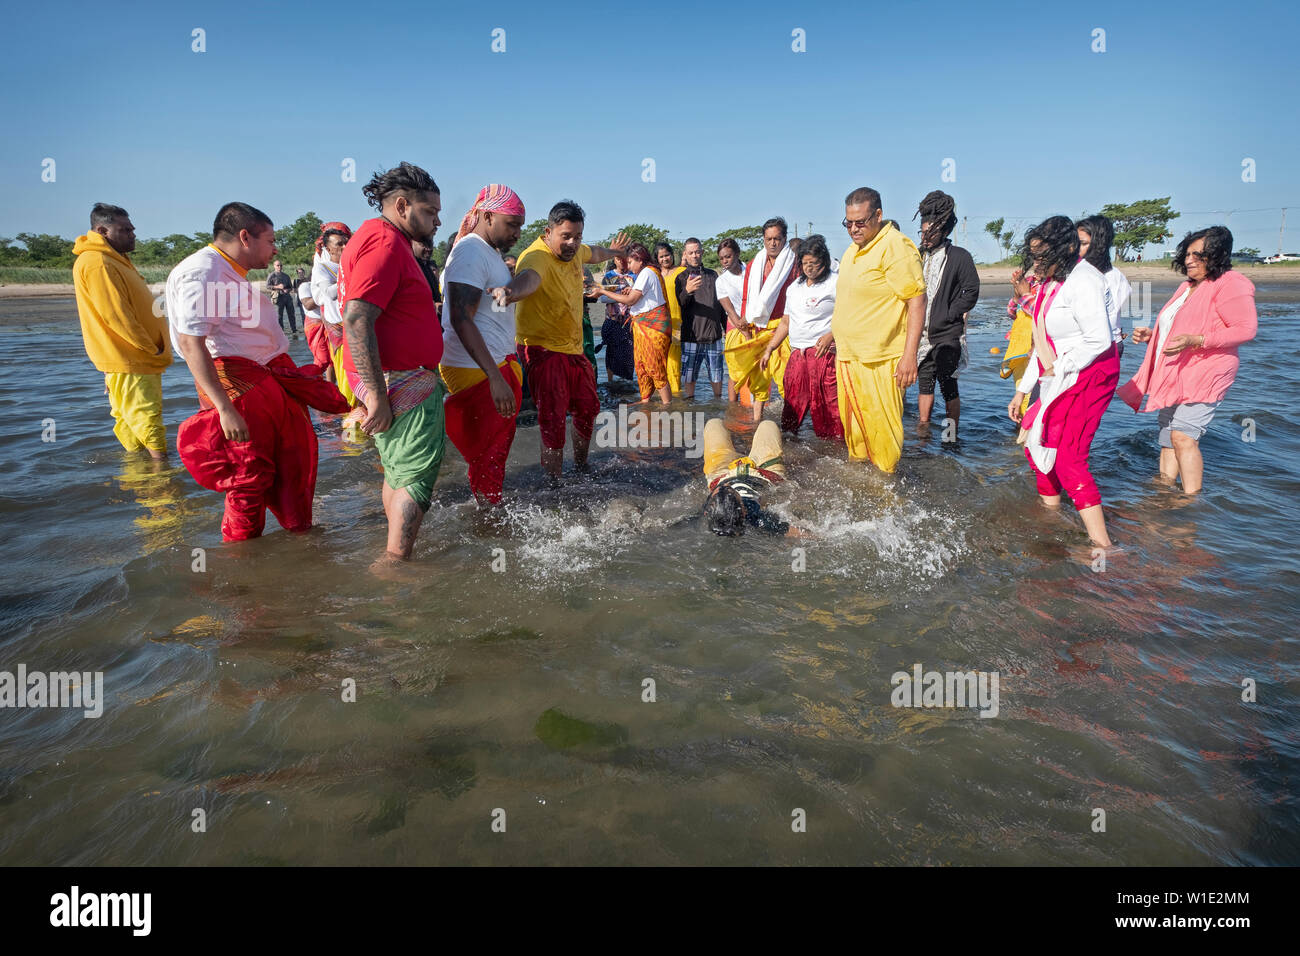 Cleansing Stock Photos & Cleansing Stock Images - Alamy